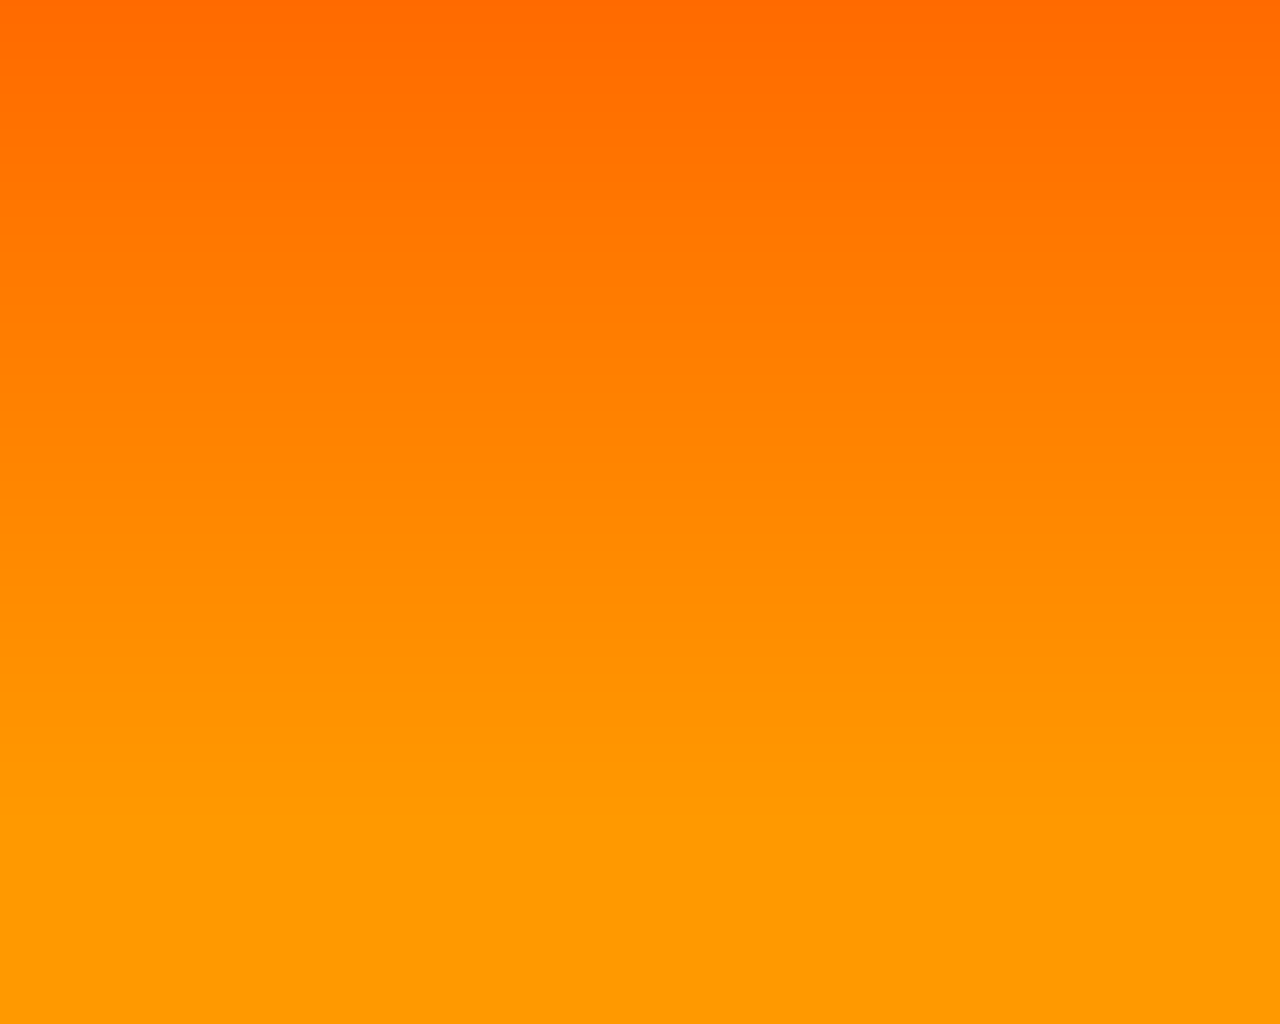 orange wallpaper by soxrox22 customization wallpaper abstract 2009 1280x1024